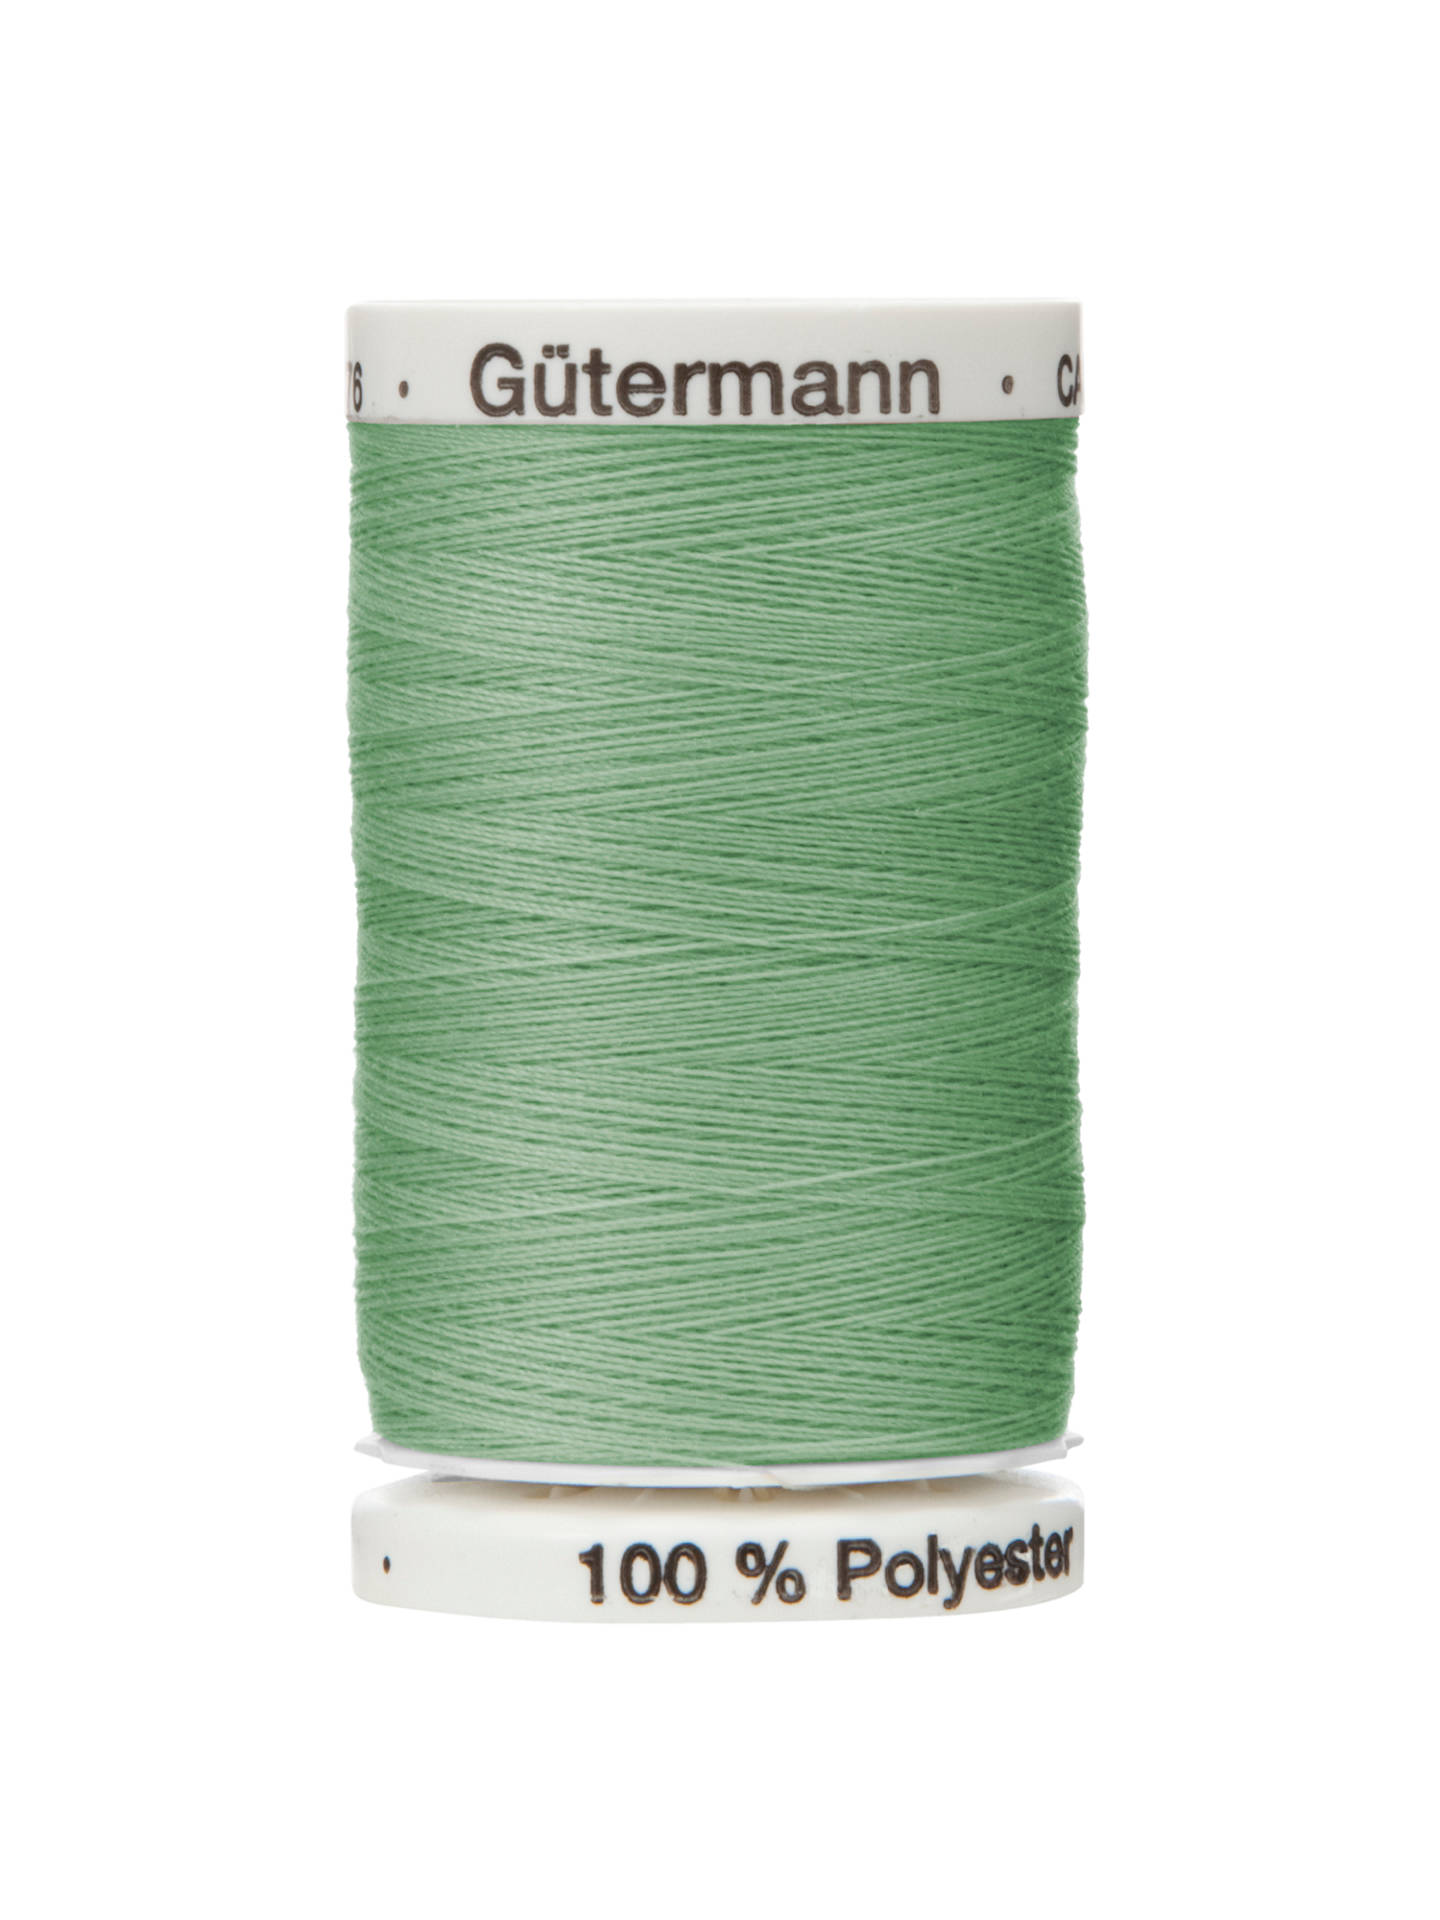 100m Gutermann Sew-all Thread 302